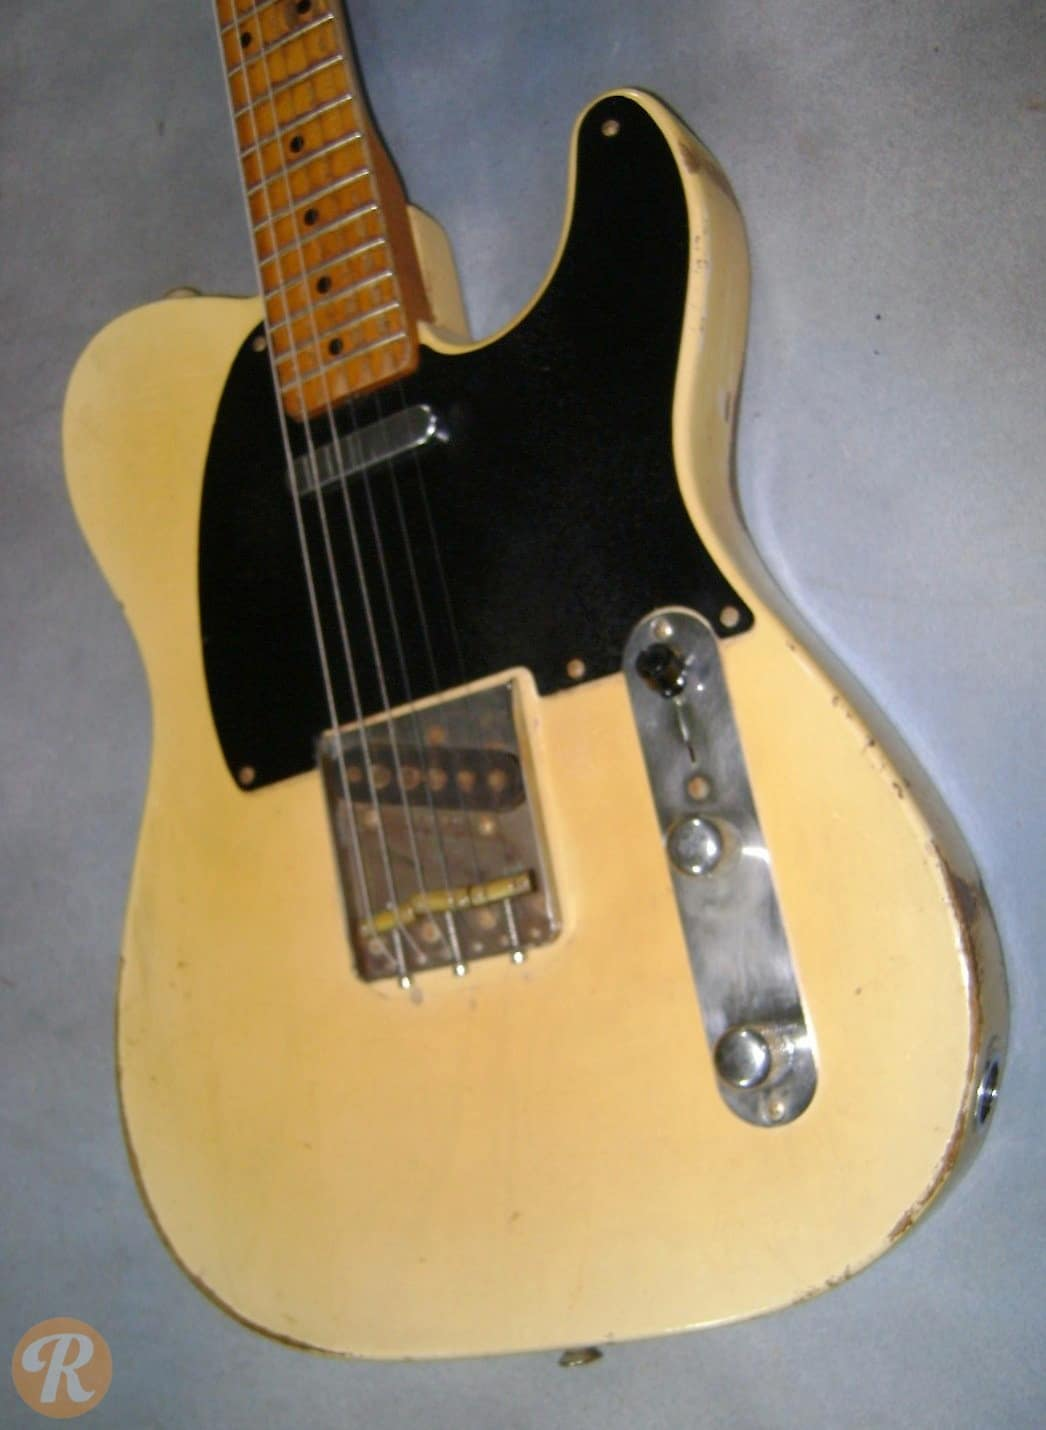 Auto Body Shops >> Fender Telecaster 1952 Blonde Price Guide | Reverb